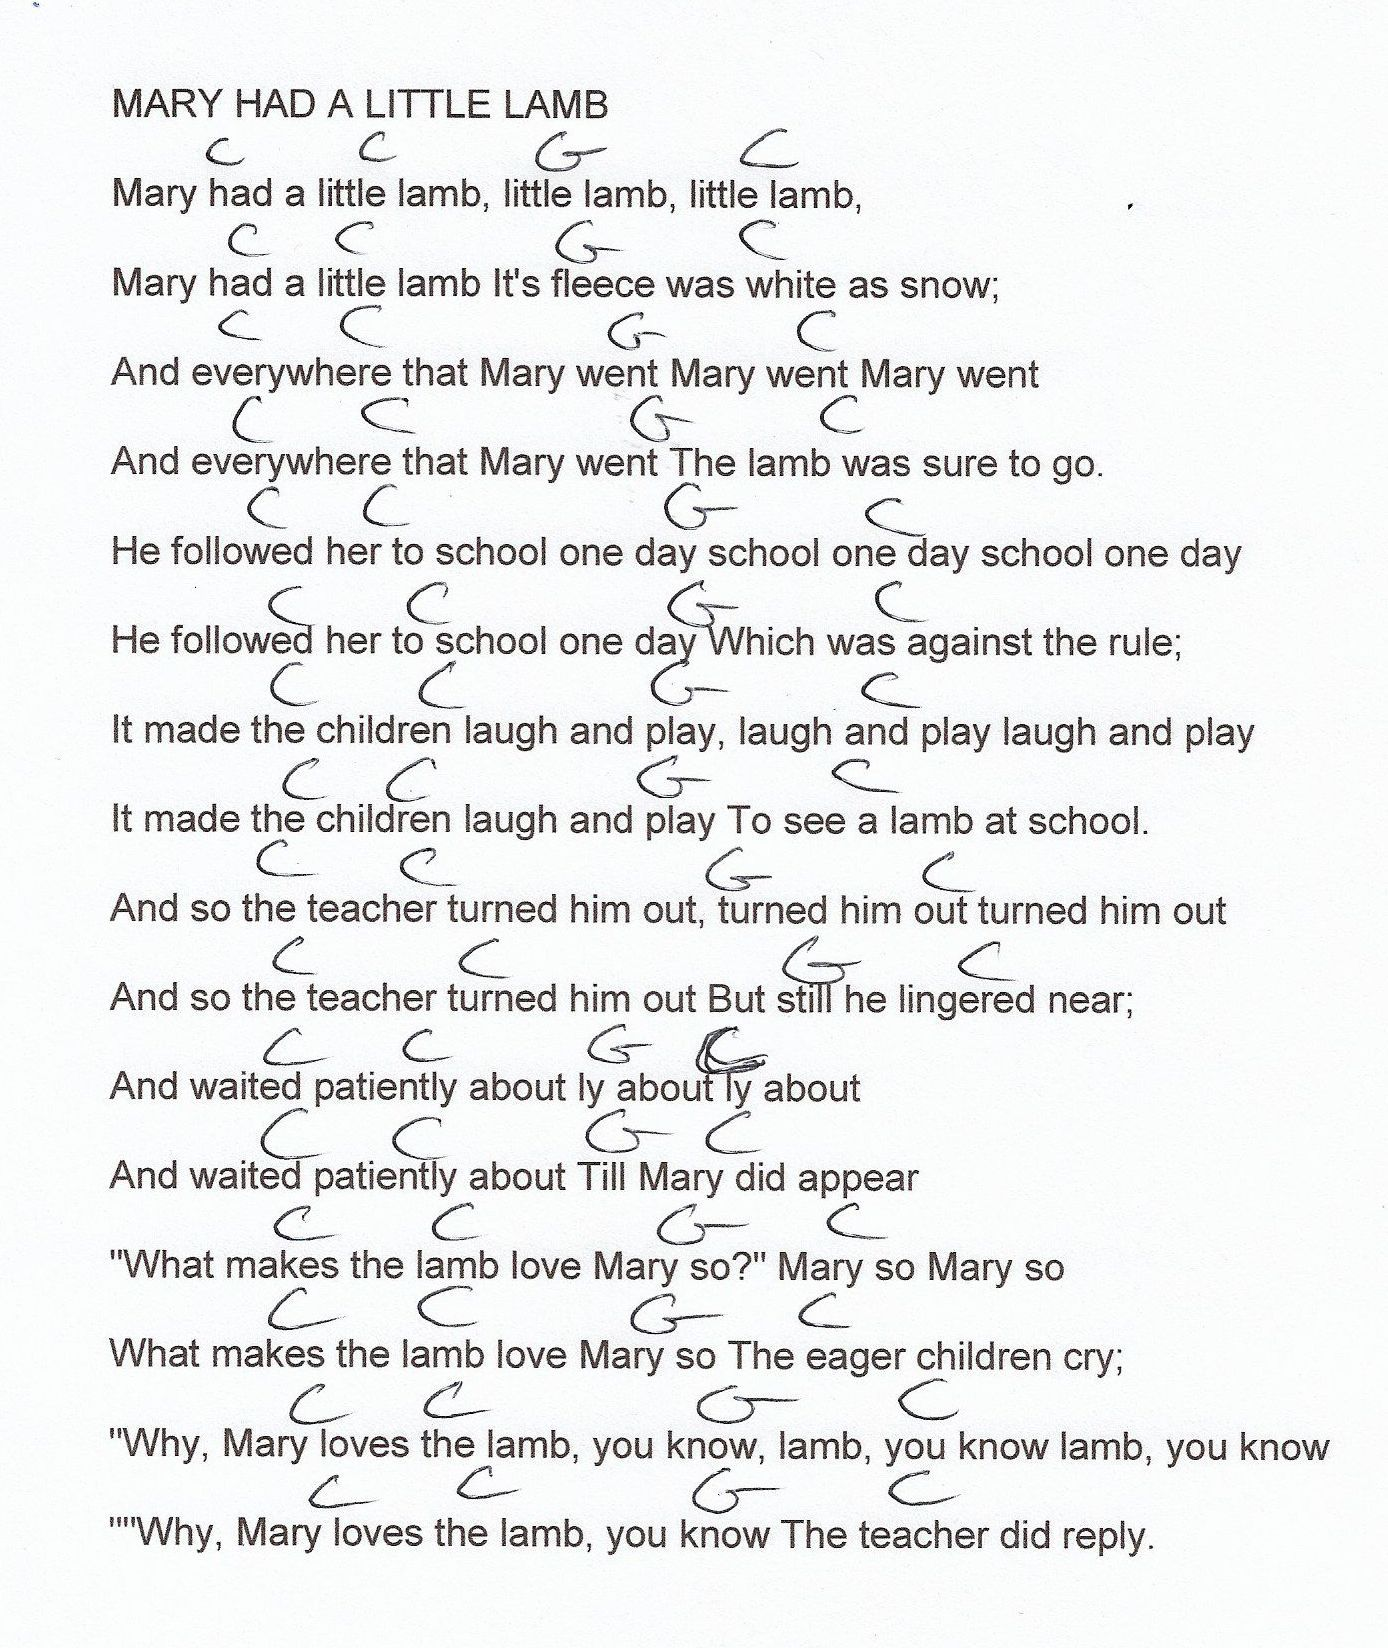 medium resolution of mary had a little lamb guitar chord chart in c major